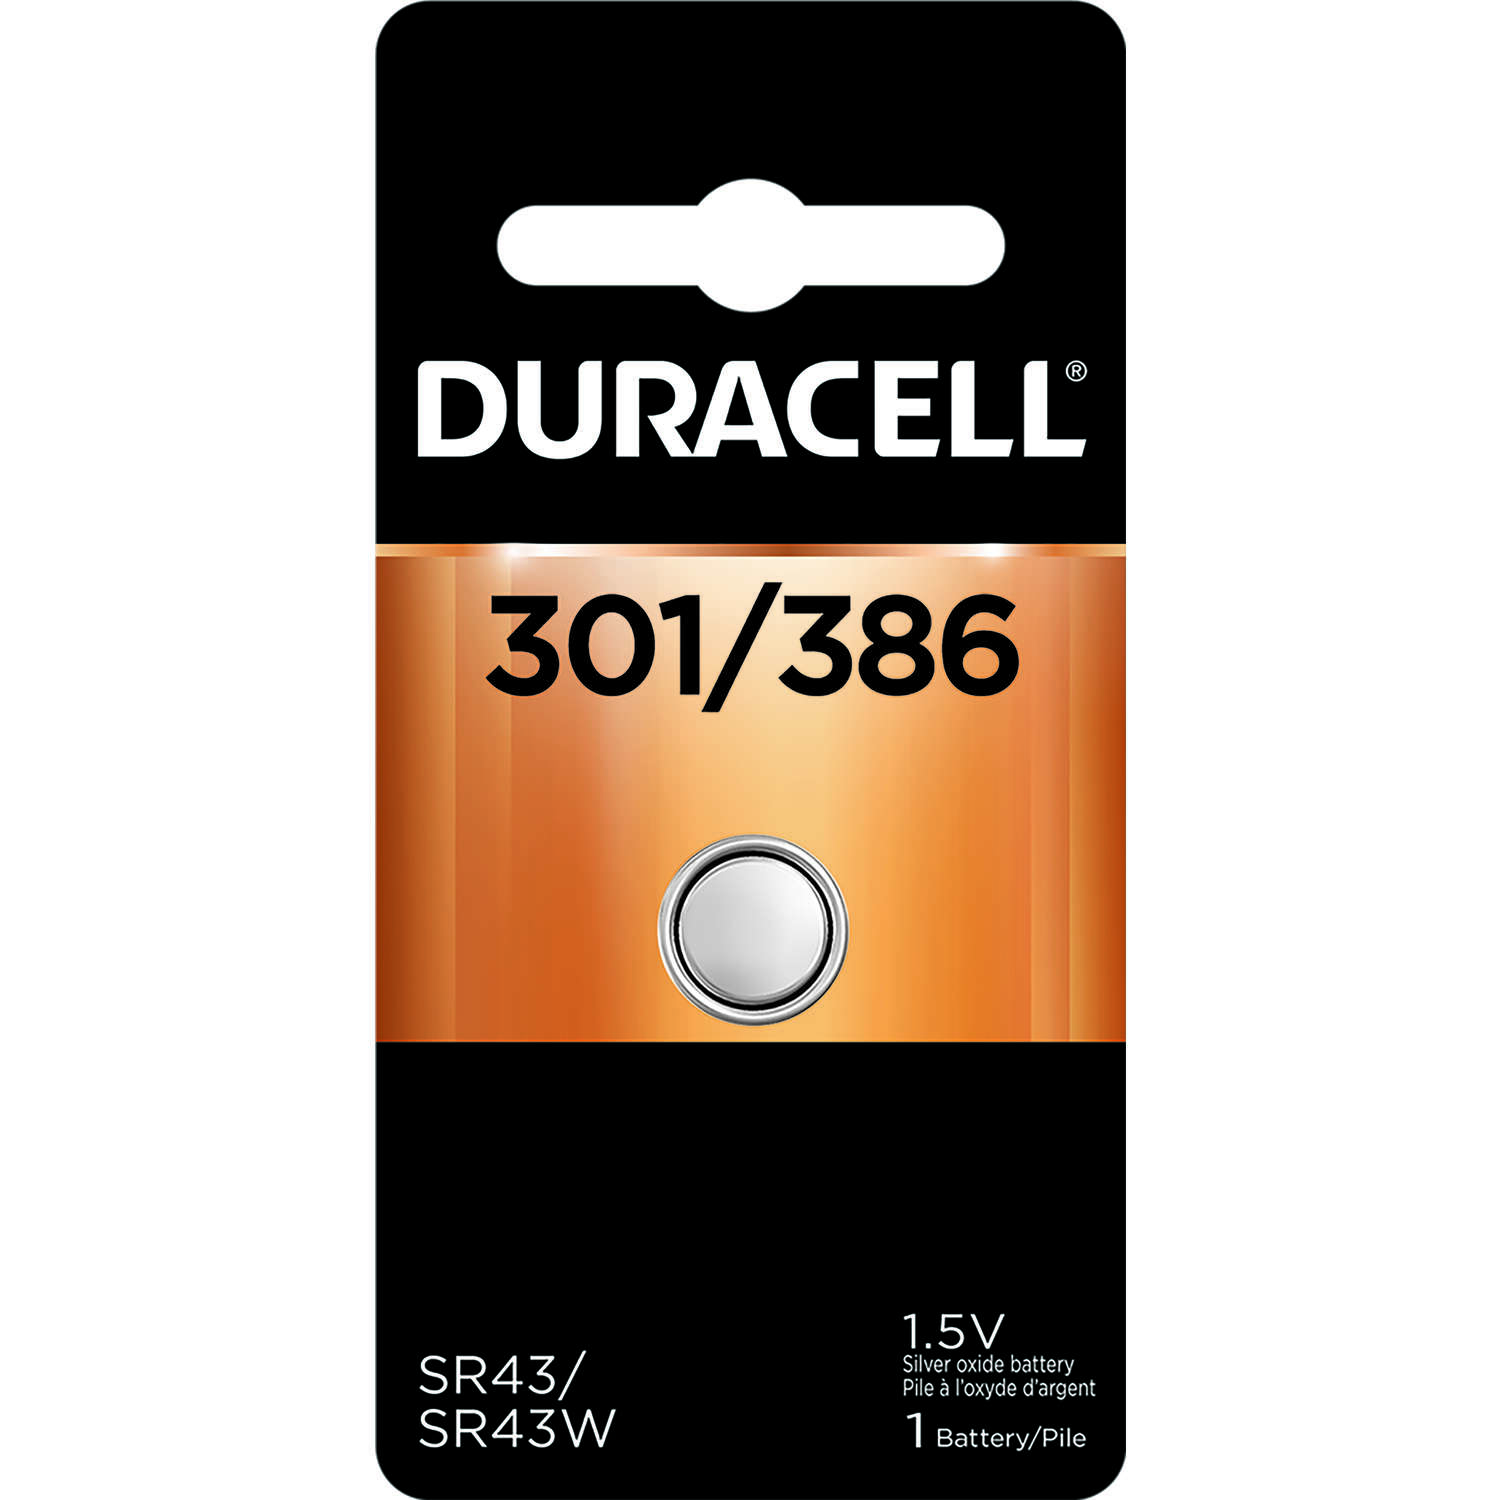 Duracell  Silver Oxide  301/386  1.5 volt Electronic/Watch Battery  1 pk